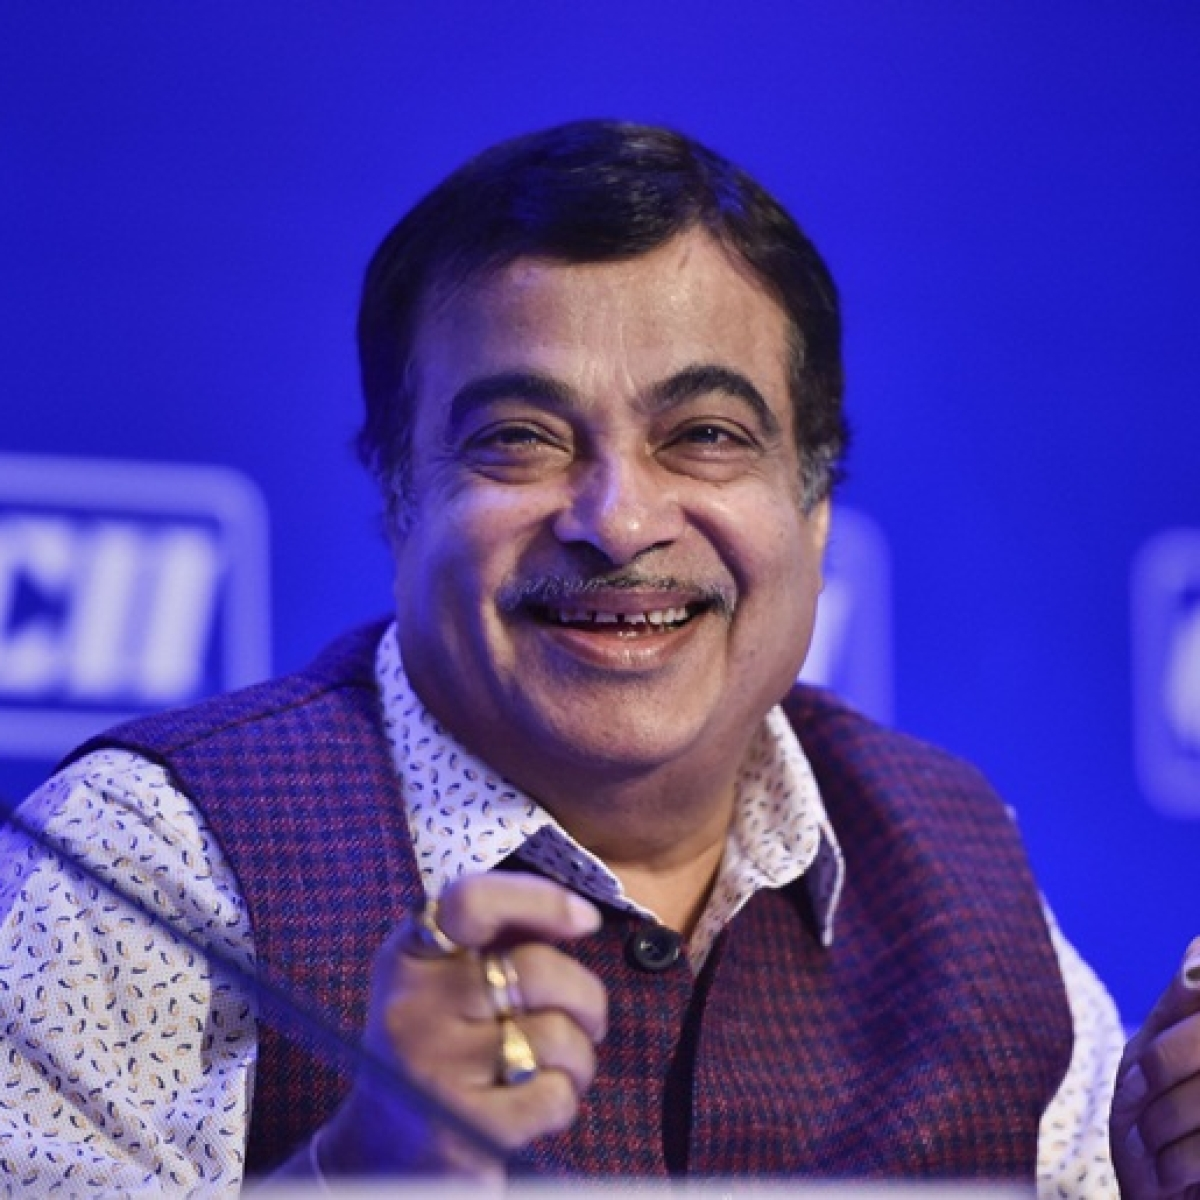 Boosting MSME important to reach Modi's goal of making India USD 5 trillion economy: Nitin Gadkari